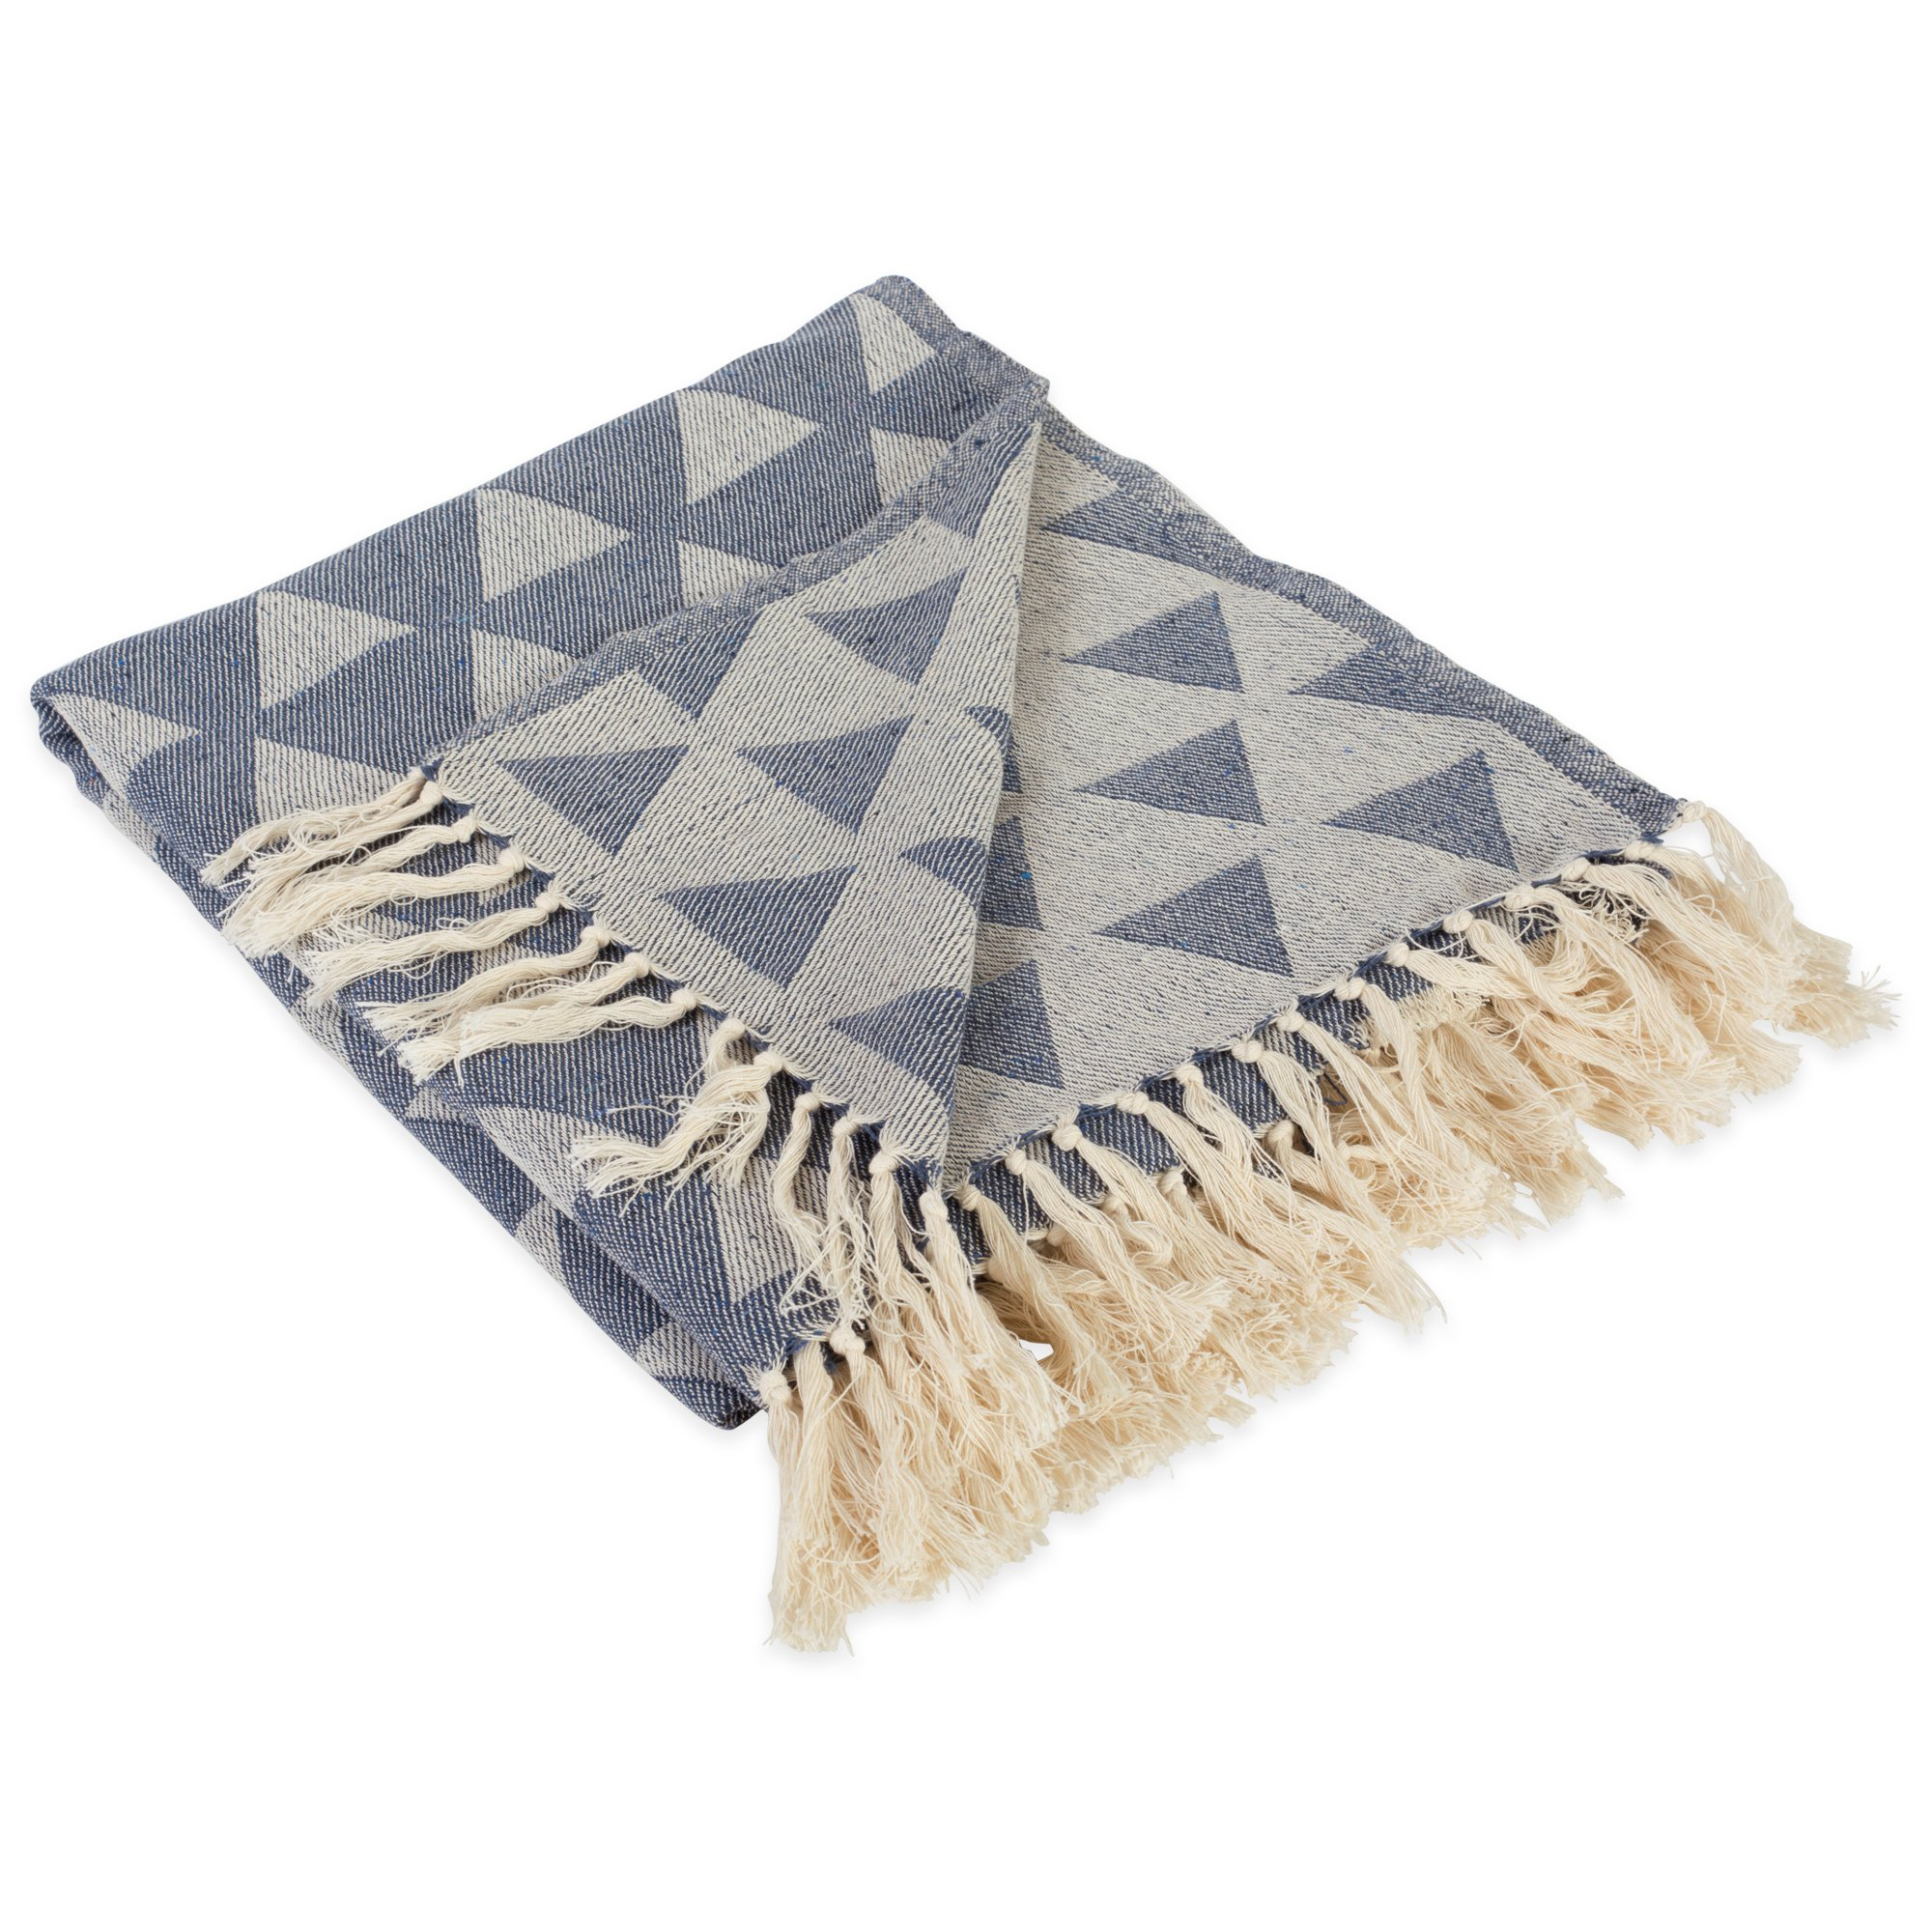 DII Modern Moroccan Cotton Blanket Throw with Fringe for Chair, Couch, Picnic, Camping, Beach, Everyday Use, 50 x 60 - Triangle French Blue